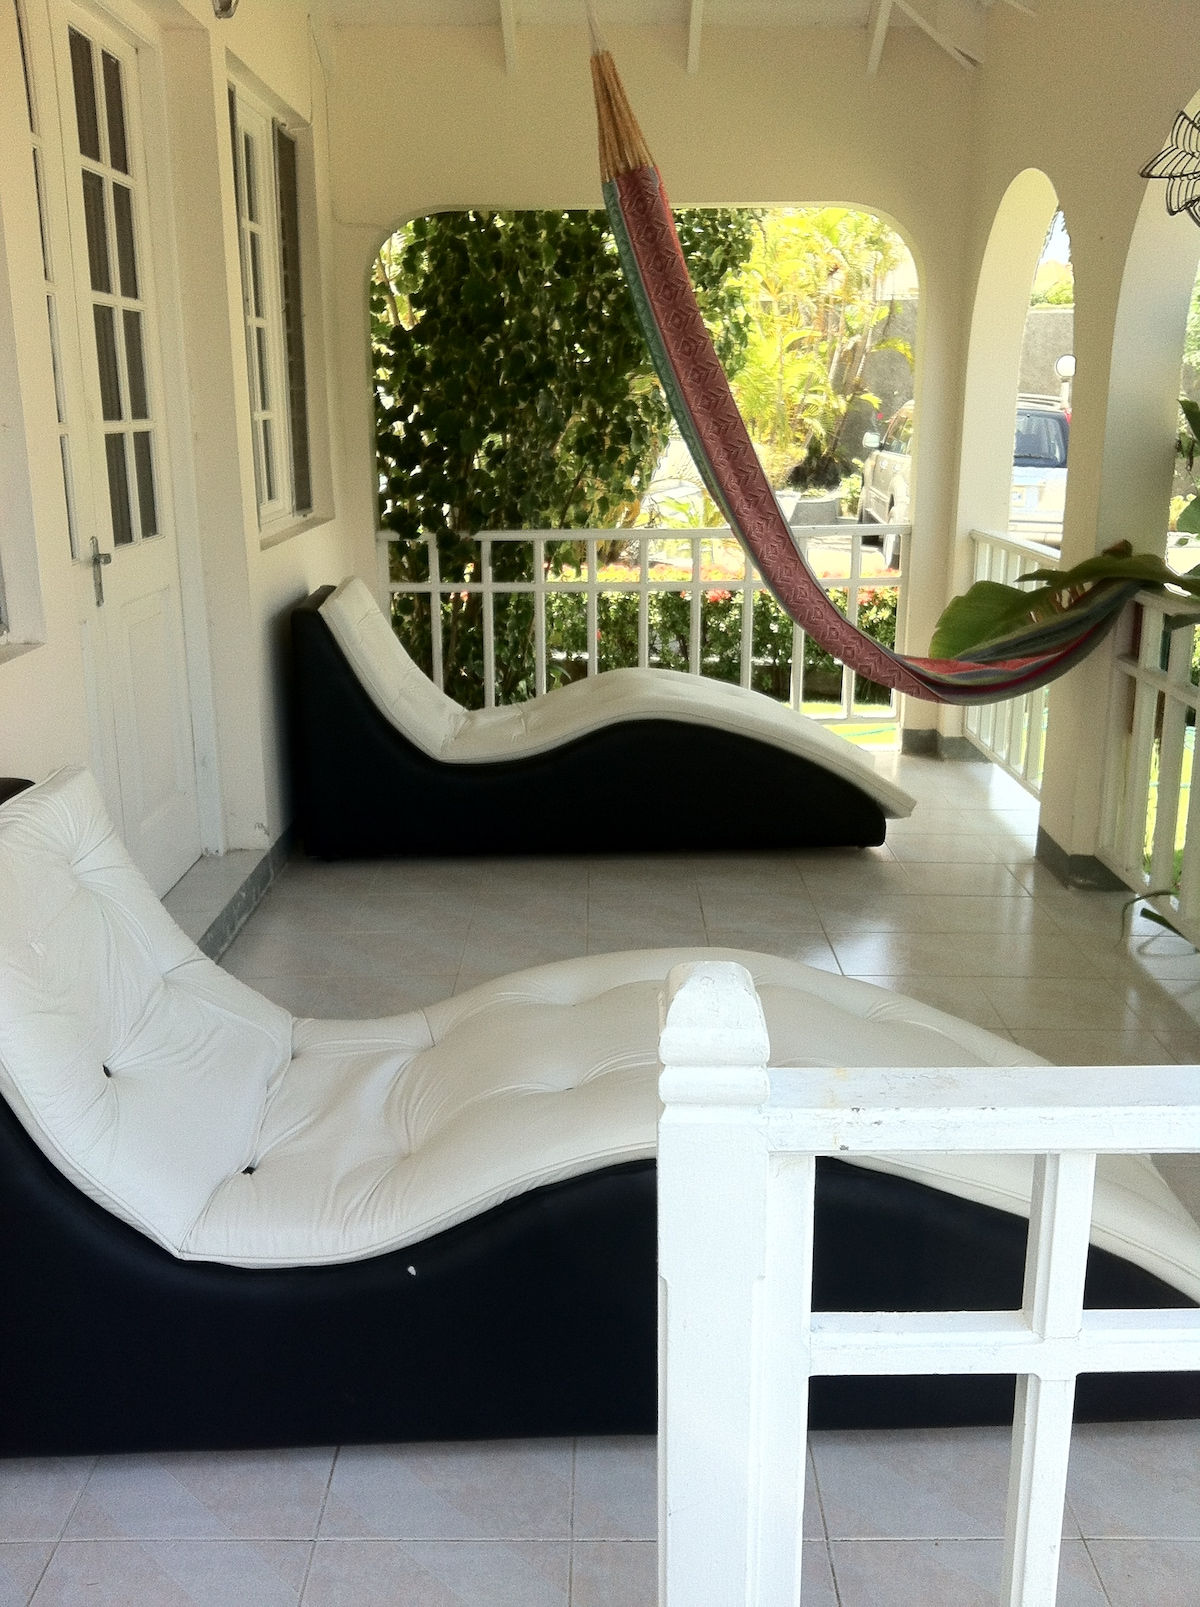 Loungers and hammock on the front patio